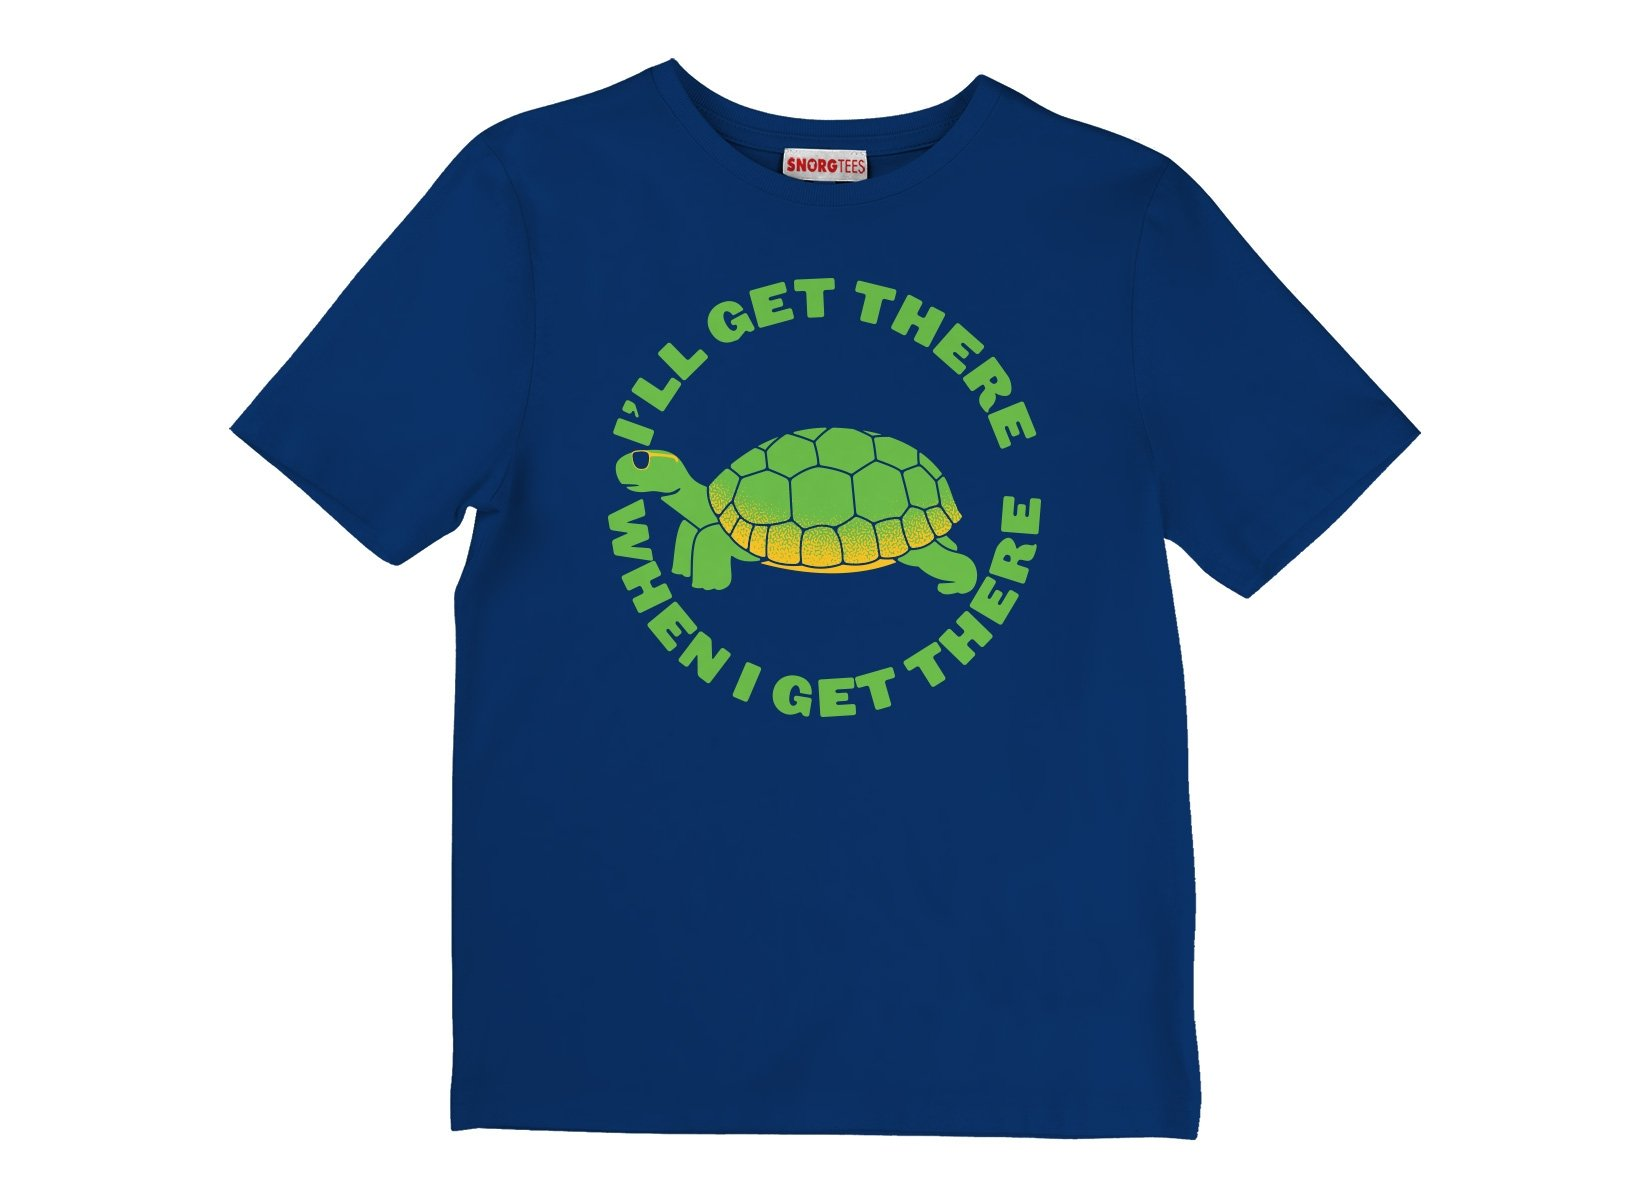 I'll Get There When I Get There on Kids T-Shirt